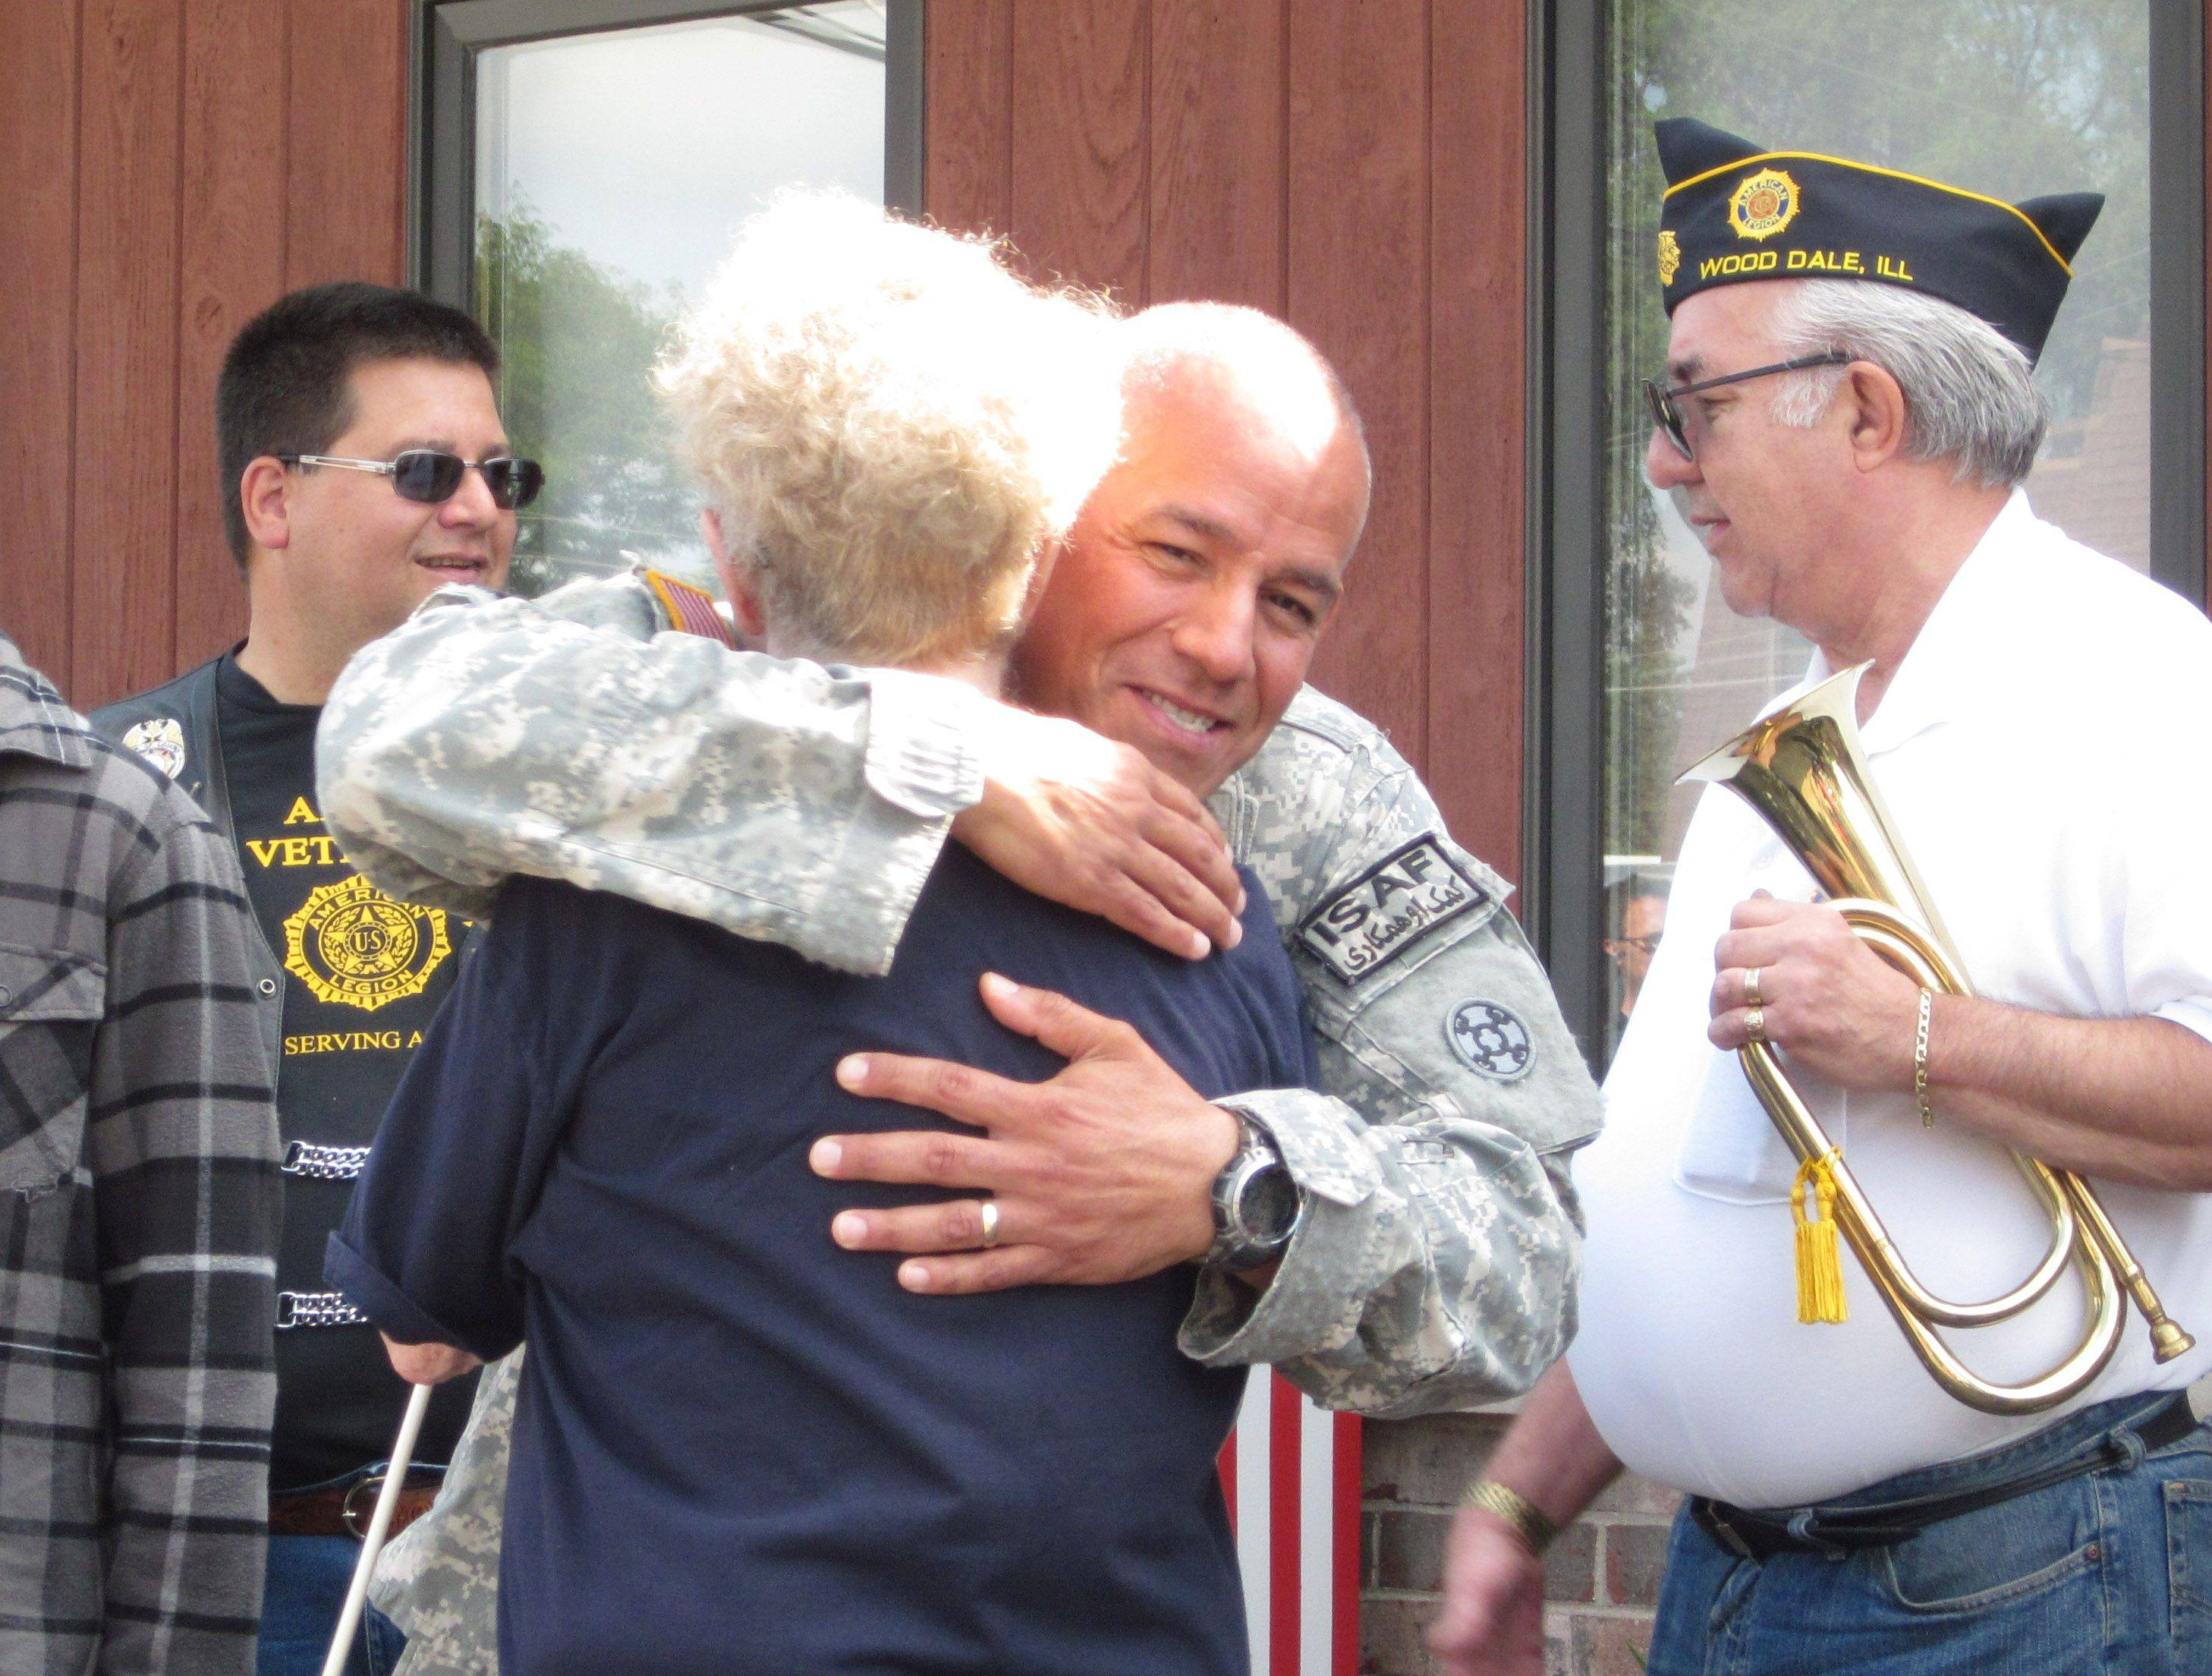 Sgt. Carlos Velazquez of Wood Dale hugs Dolores Zamminer of Chicago during a welcome home ceremony held Saturday in Wood Dale to honor Velazquez's return from service in the Army National Guard.